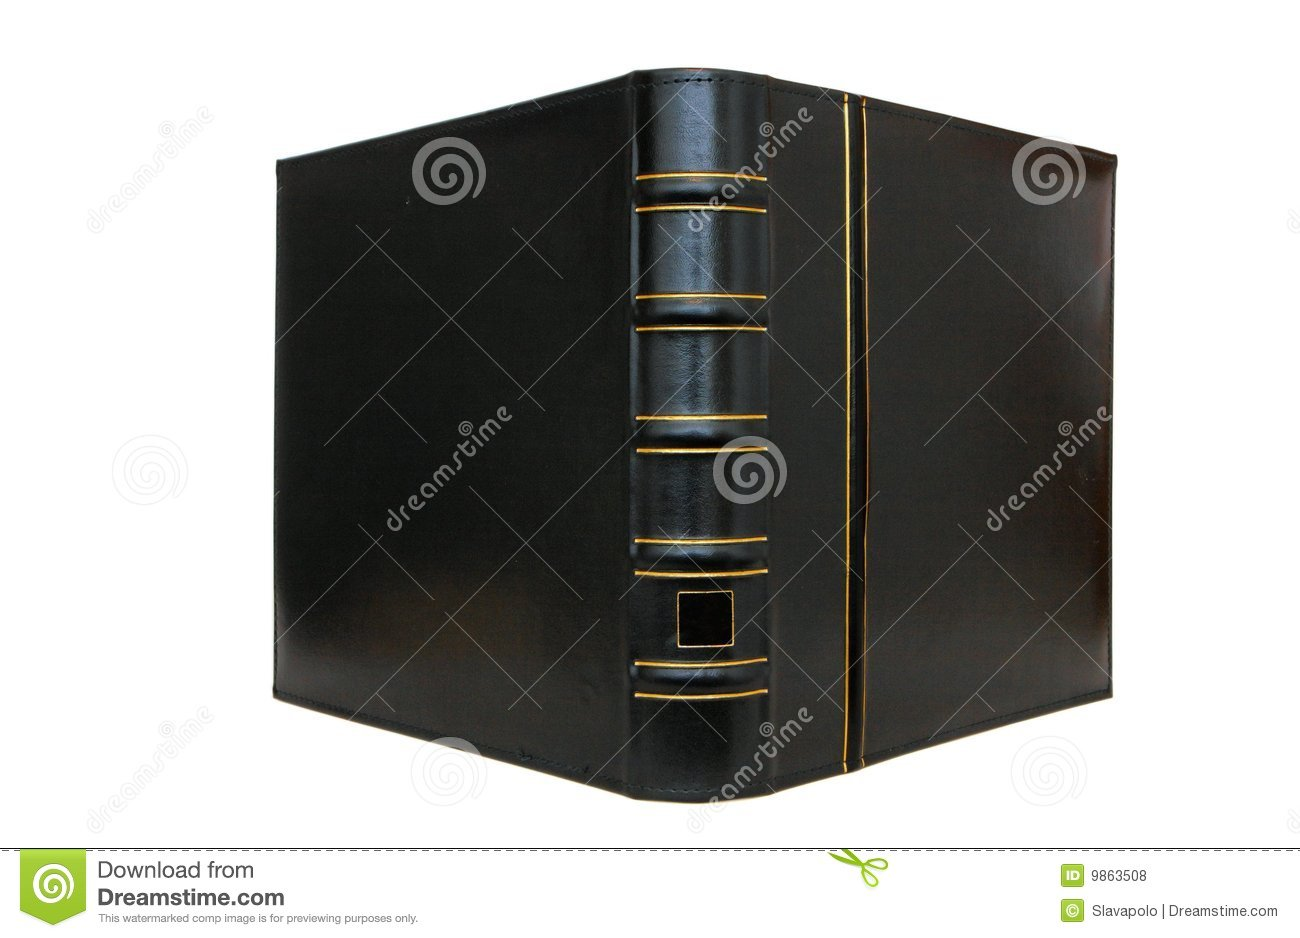 Black Book Cover Images : Black book cover stock photos royalty free images